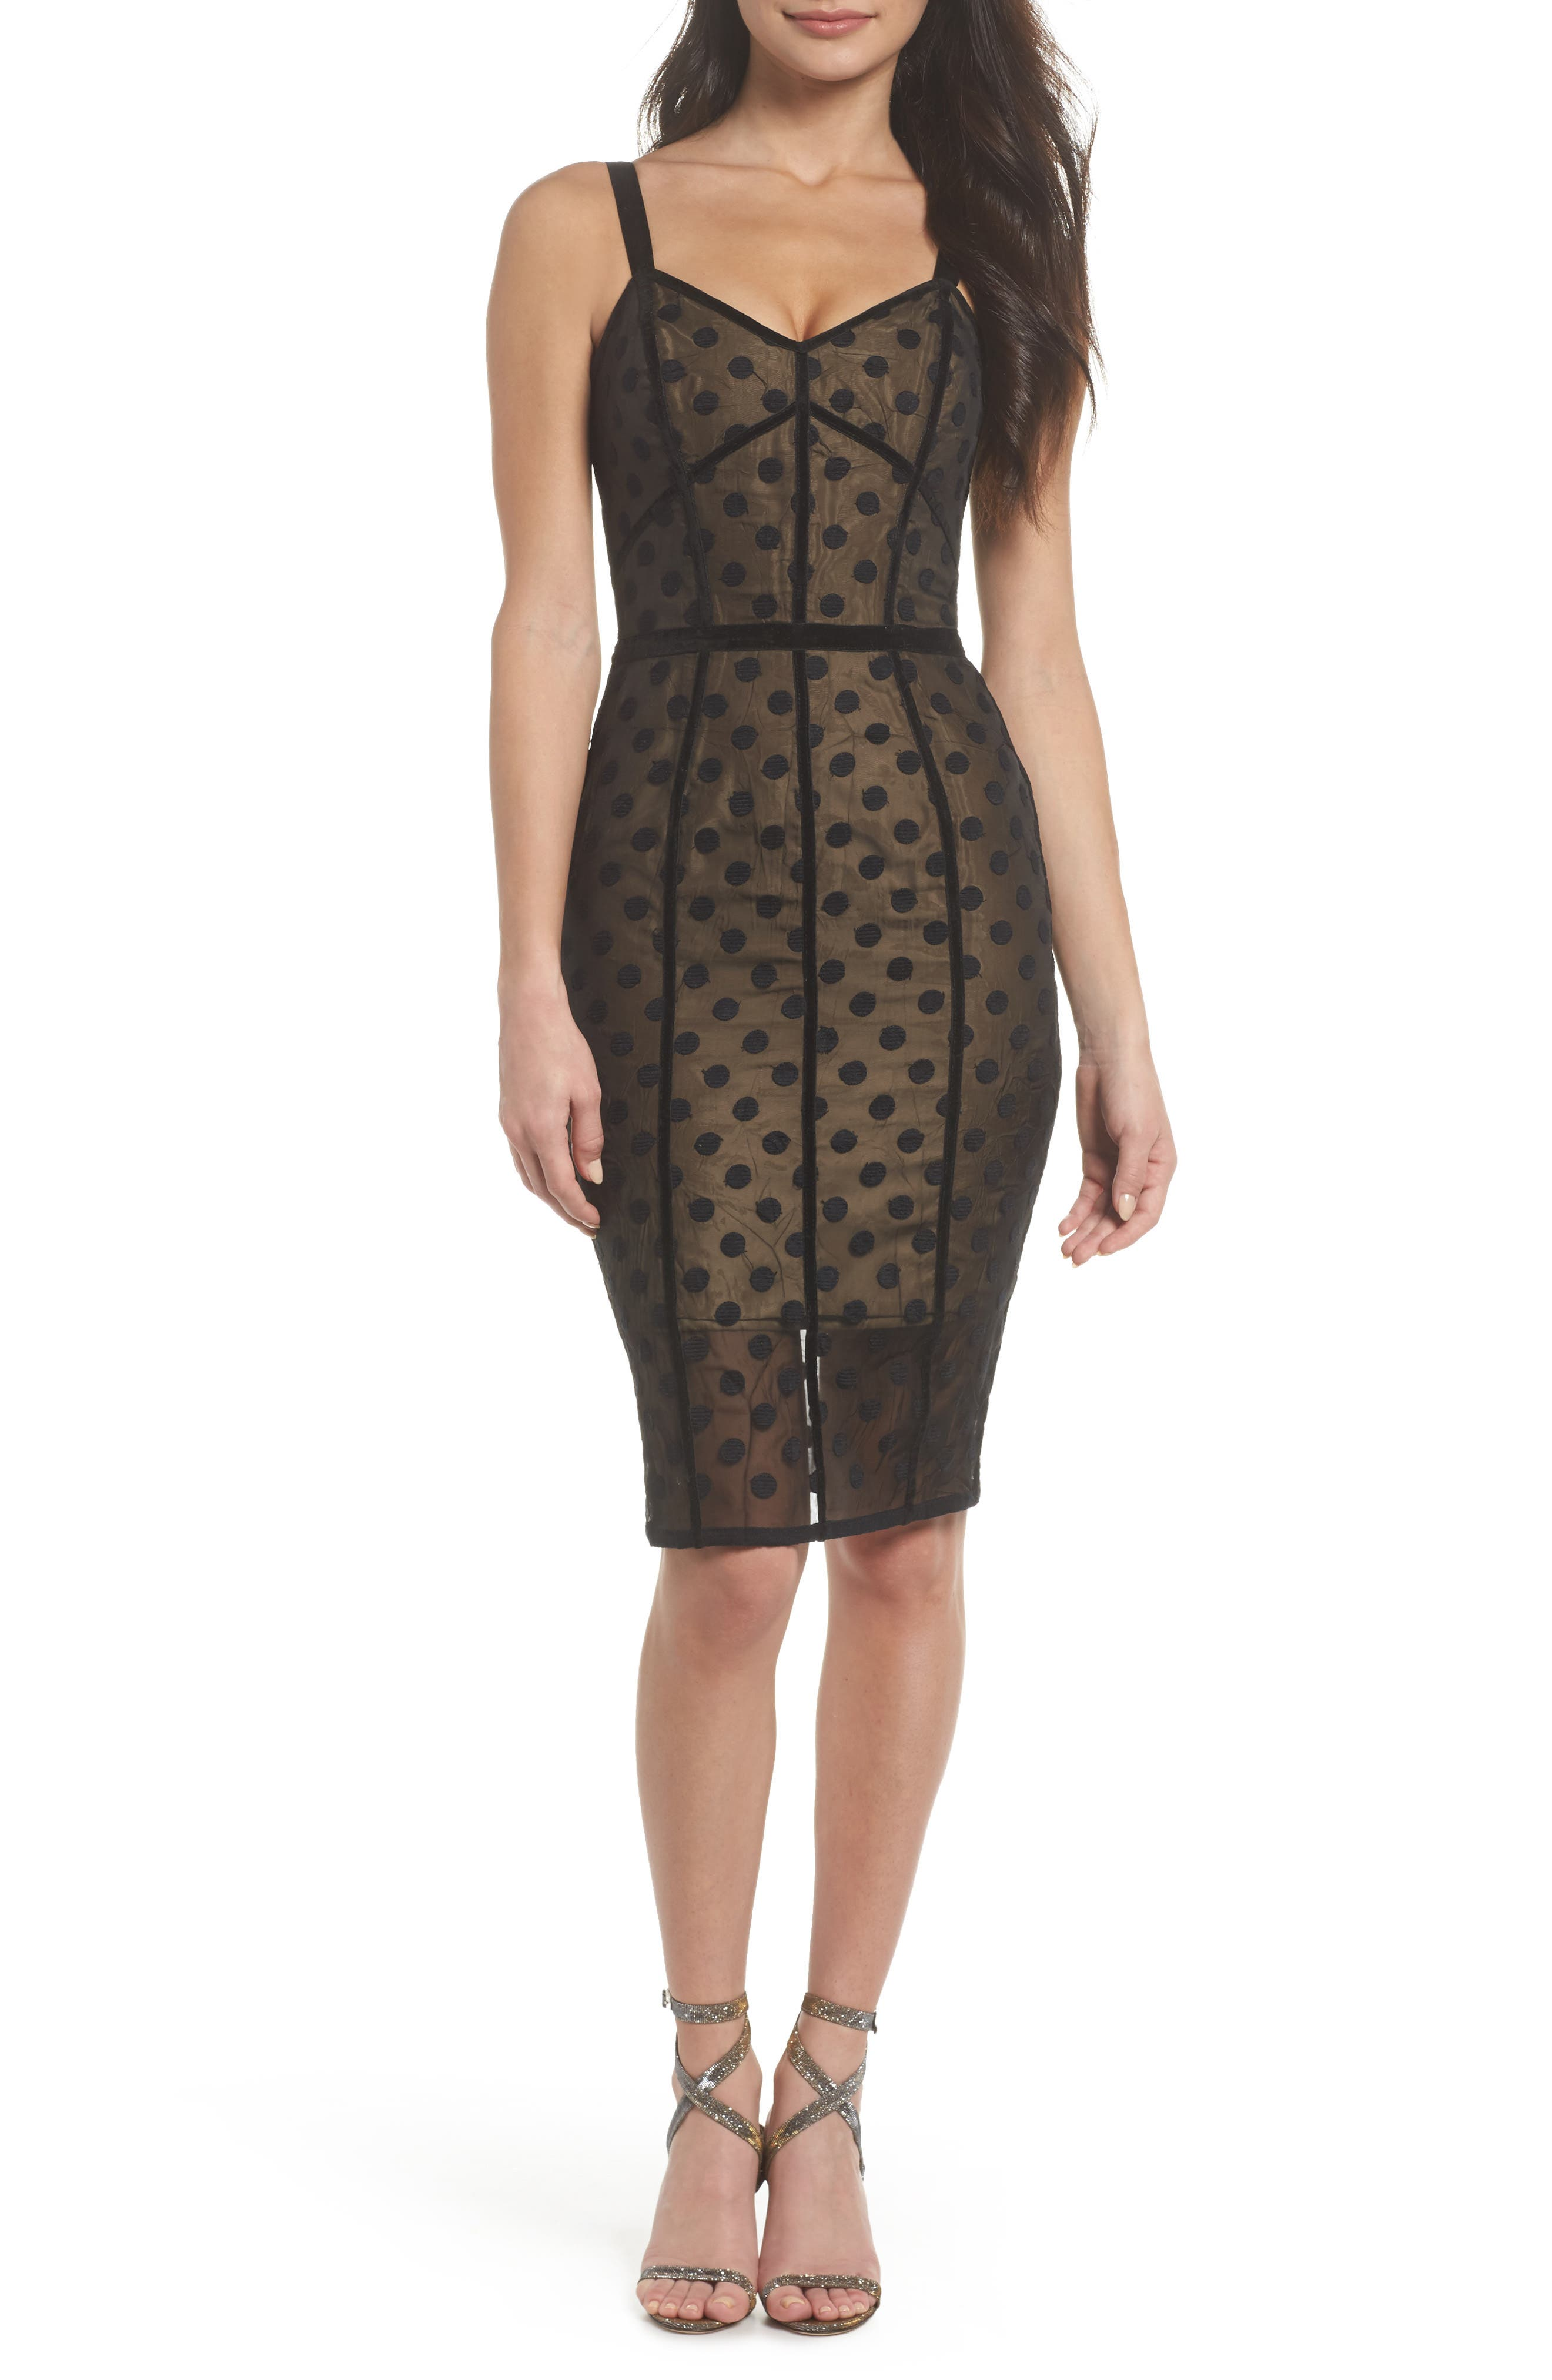 Isabella Noir Dot Embroidered Body-Con Dress,                             Main thumbnail 1, color,                             Black/ Nude